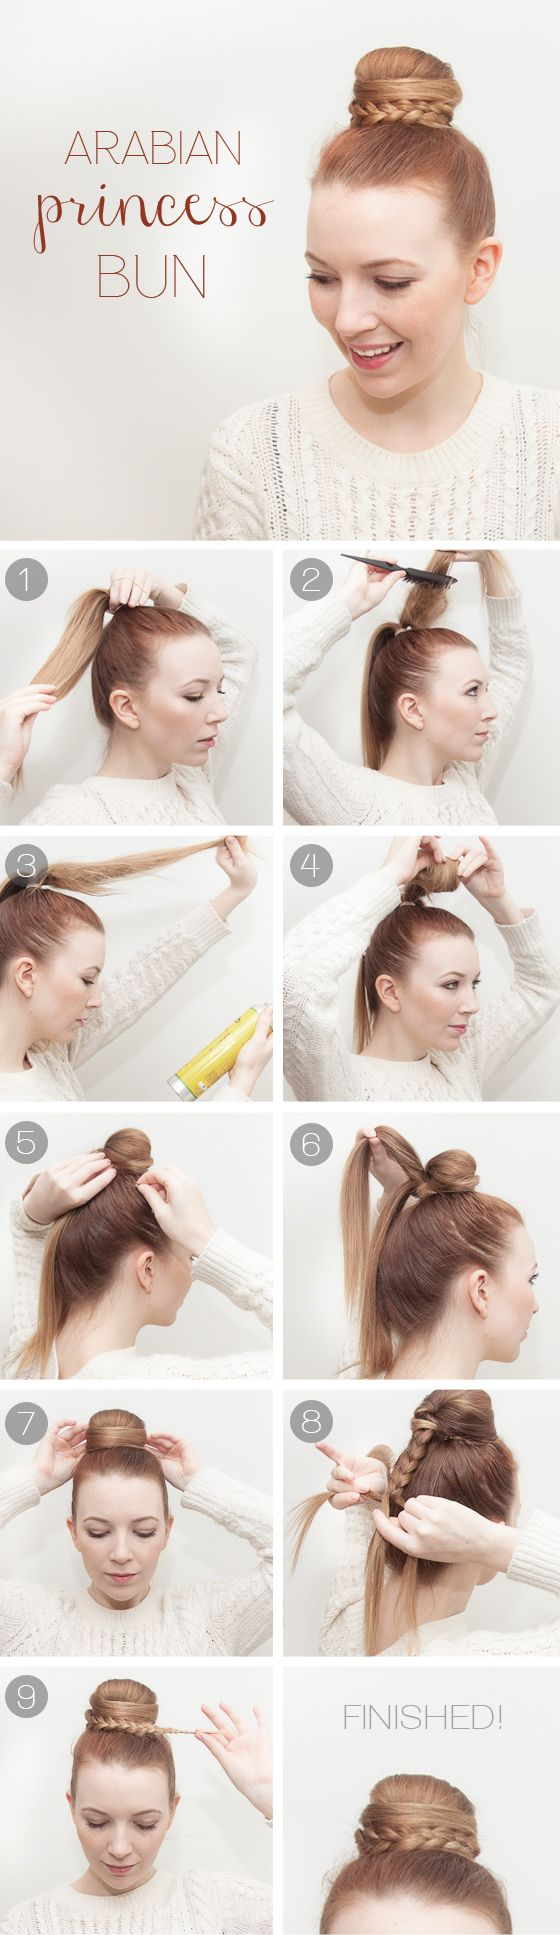 hair bun styles tutorial arabian princess bun hairstyle tutorial hairstyles 3490